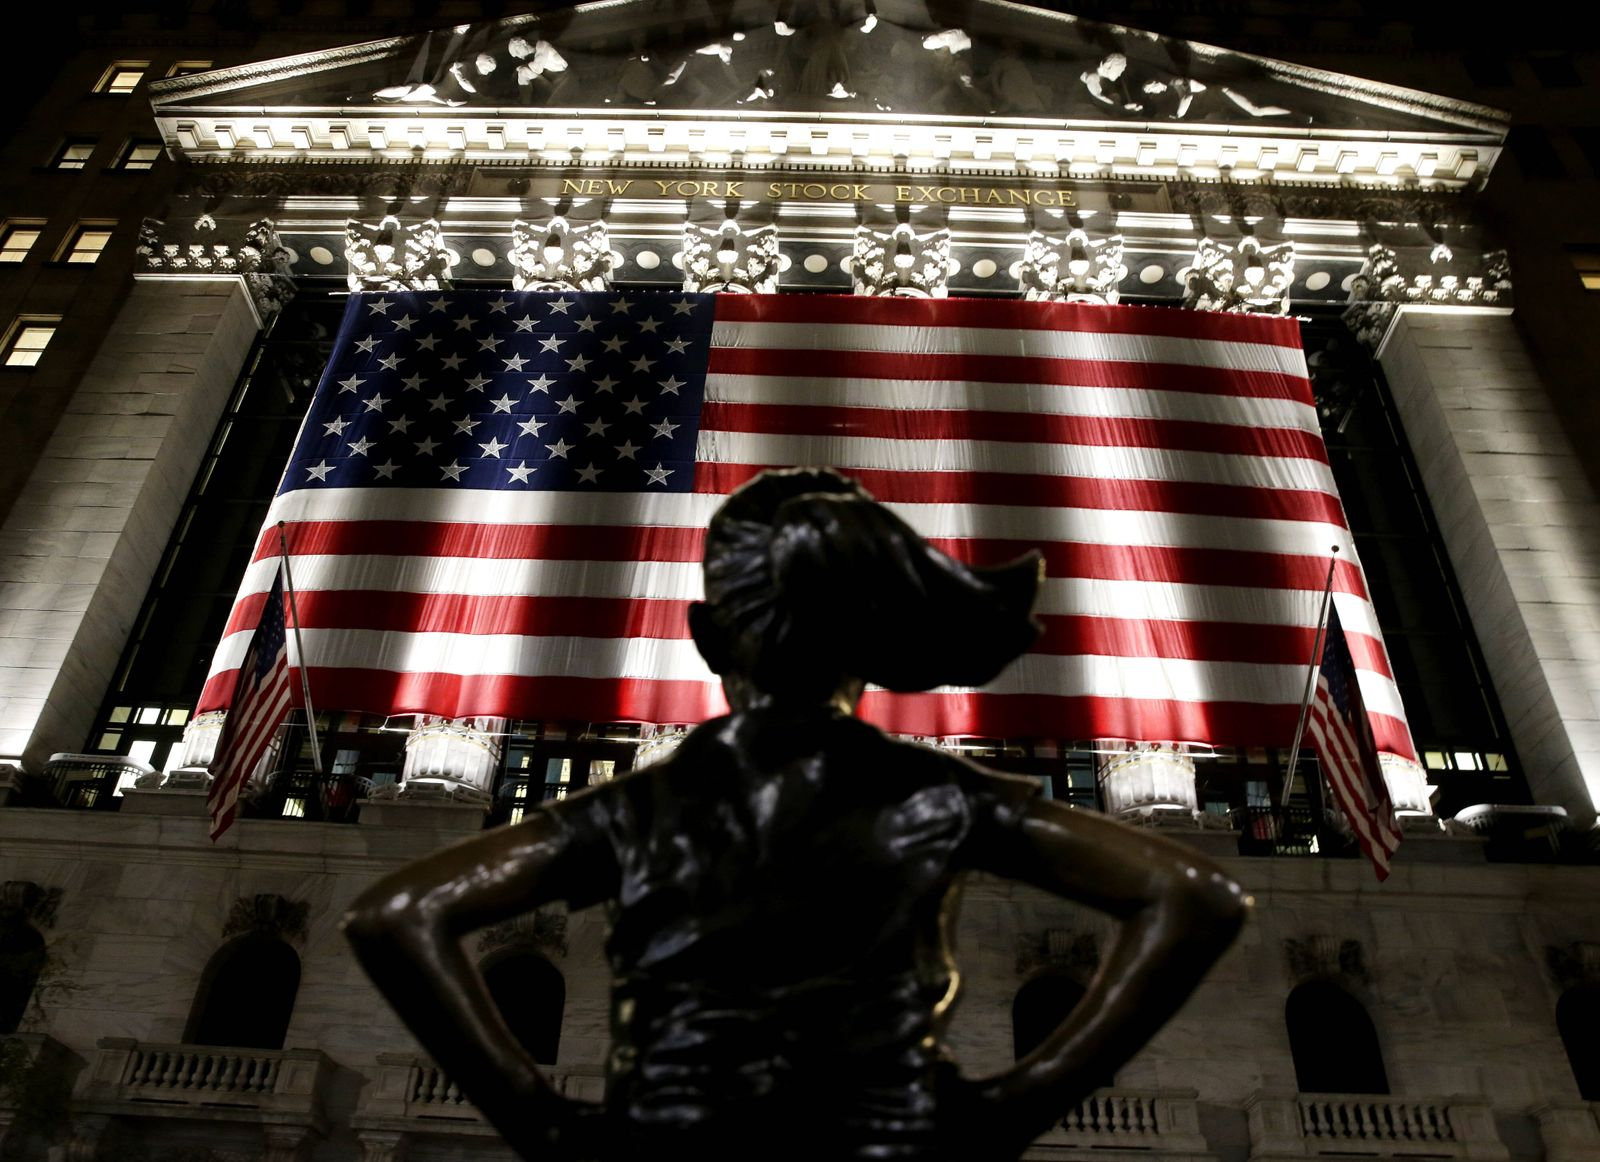 The Fearless Girl Statue faces an American Flag that hangs outside at the New York Stock Exchange on Election Night on